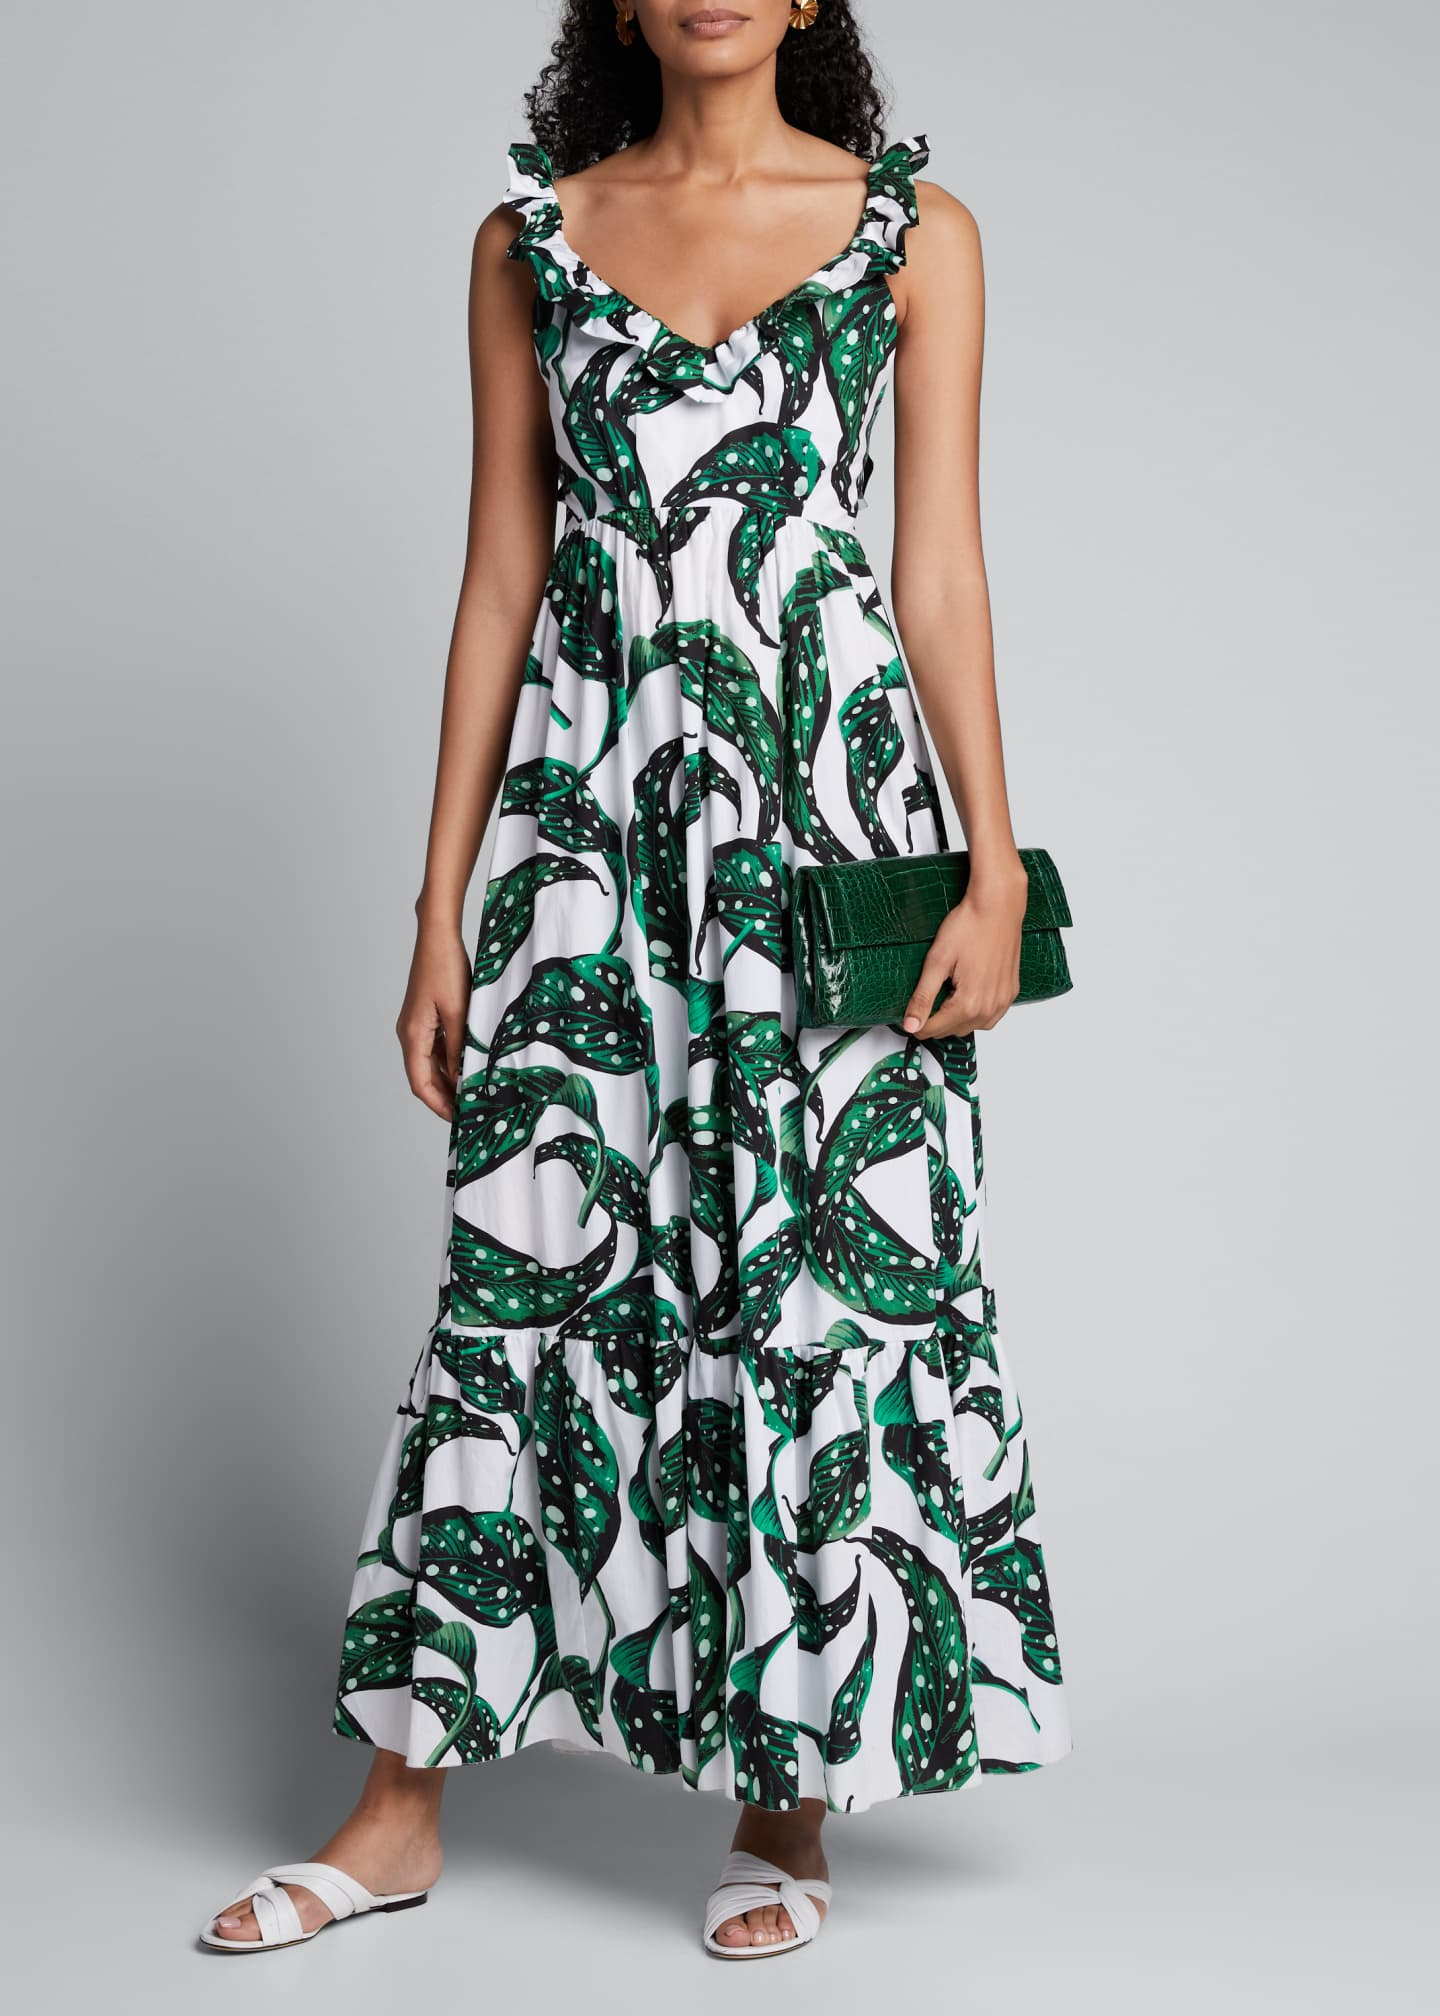 Borgo de Nor Liya Leaf-Print Ruffled V-Neck Dress